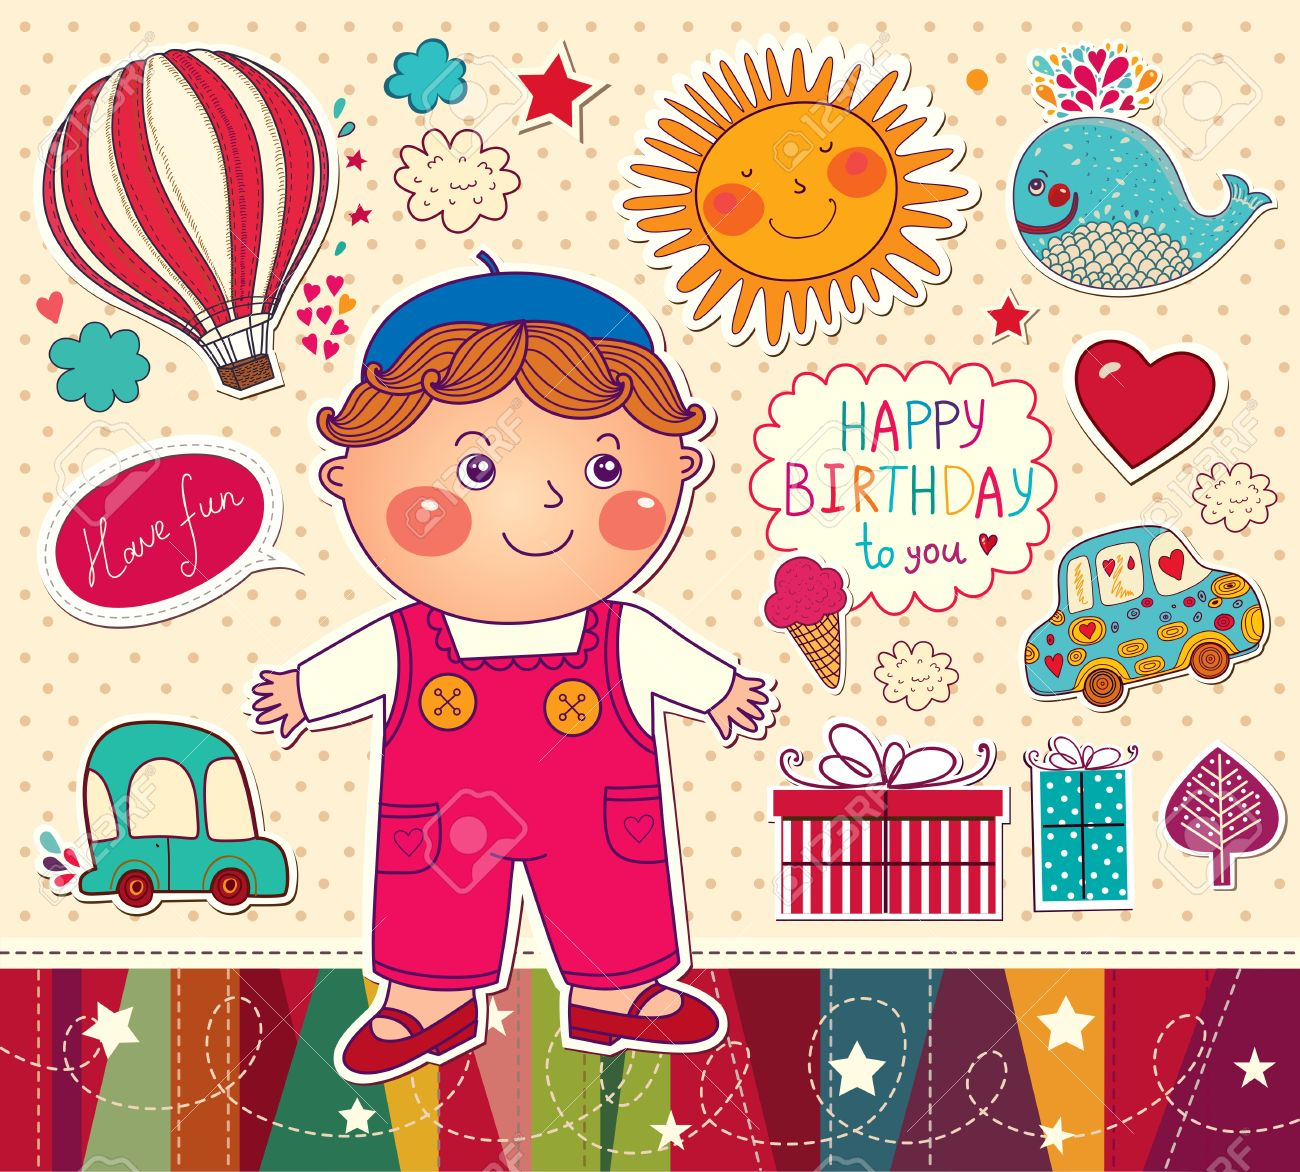 Happy Birthday Card With Boy And Toys Stock Vector